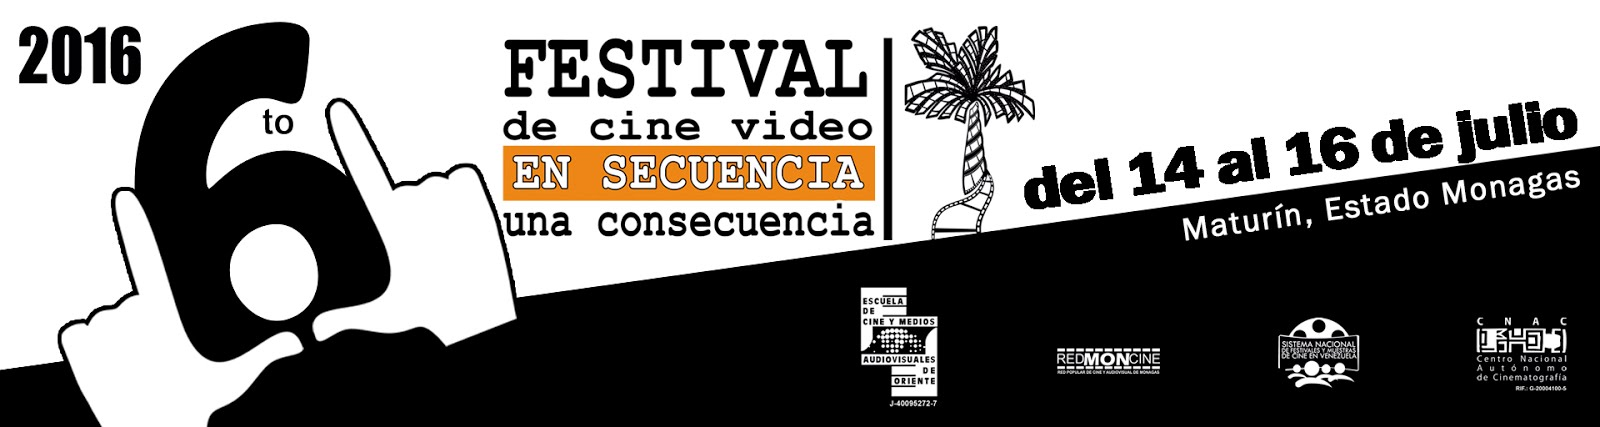 Festival de Cine Video en Secuencia